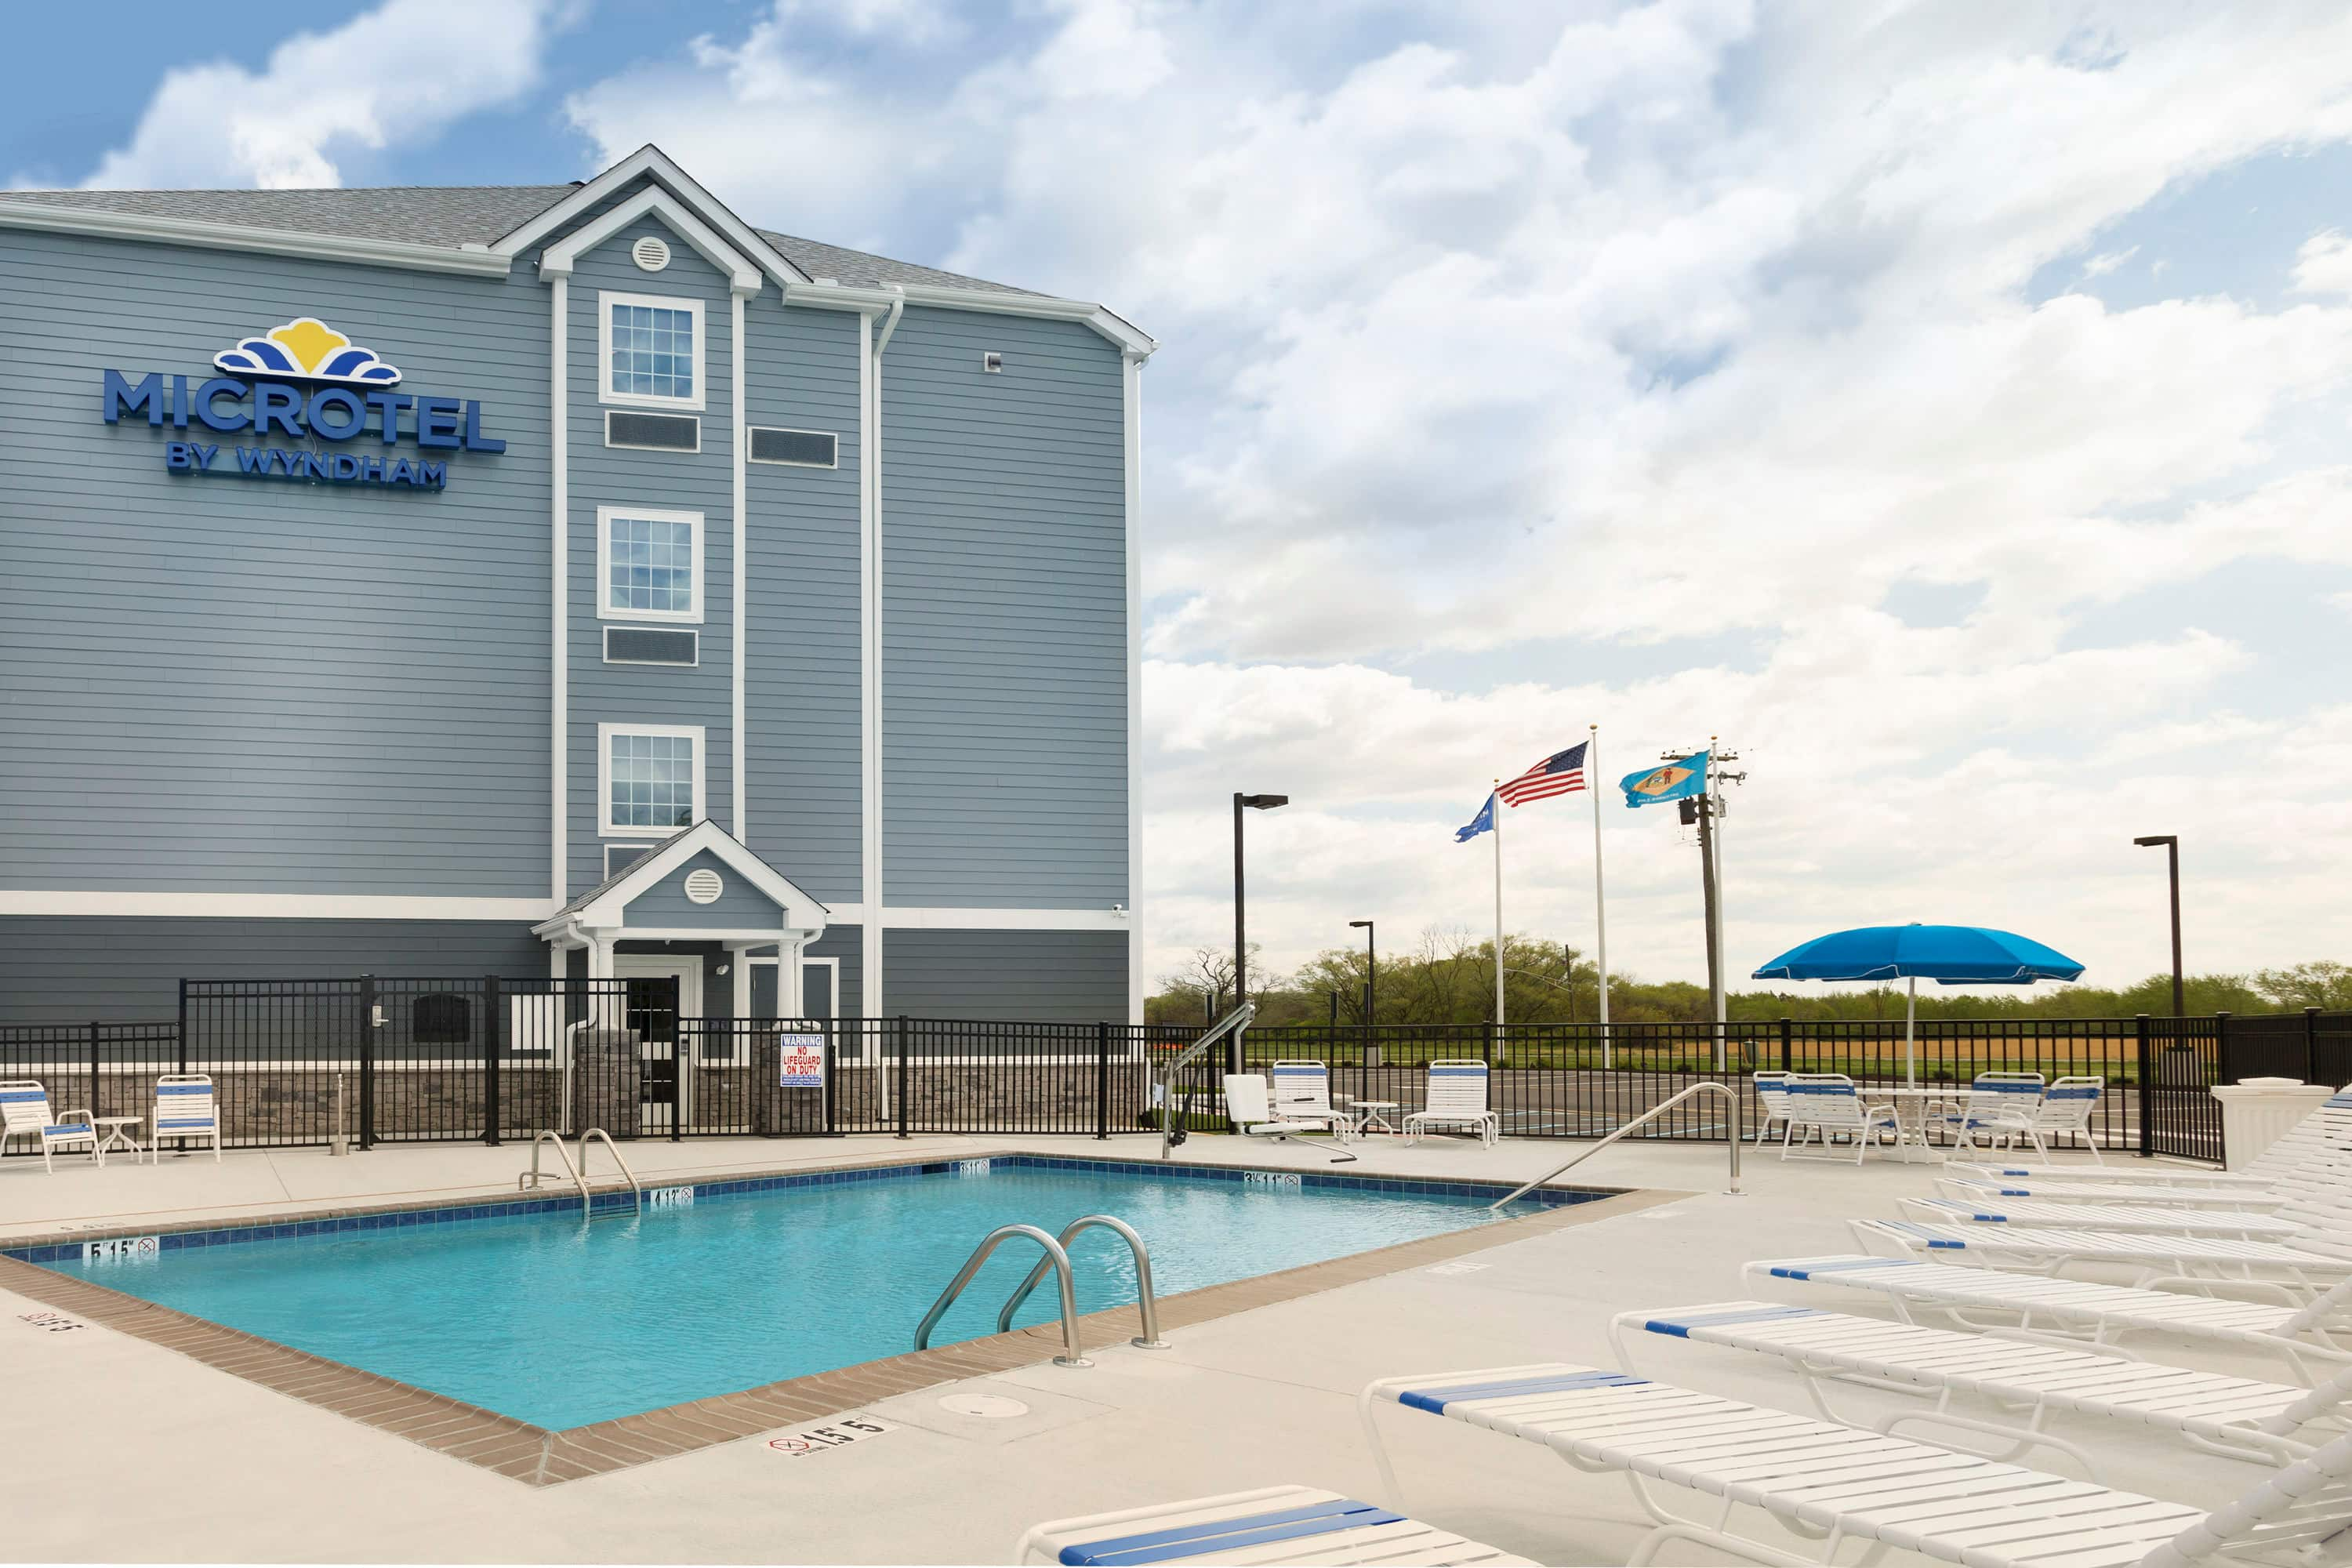 Pool At The Microtel Inn U Suites By Wyndham Georgetown Delaware Beaches In With Hotels Near Millsboro De